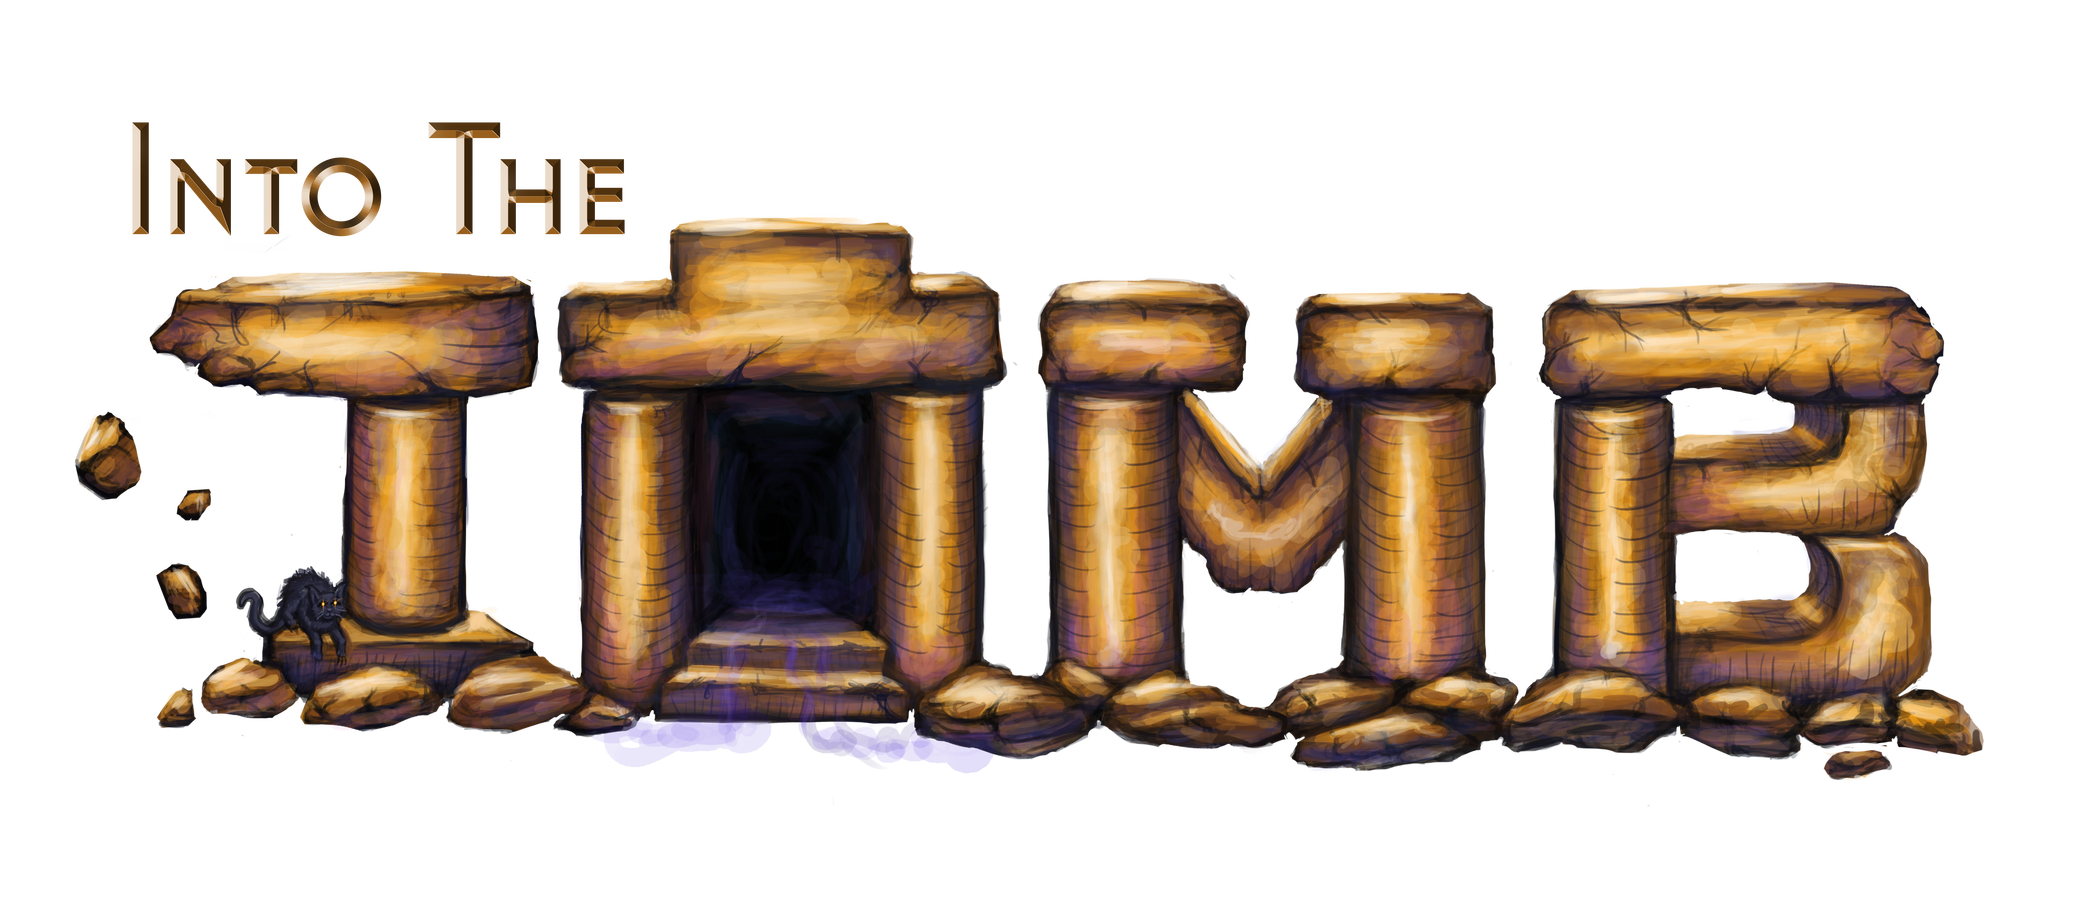 into-the-tomb-logo.png